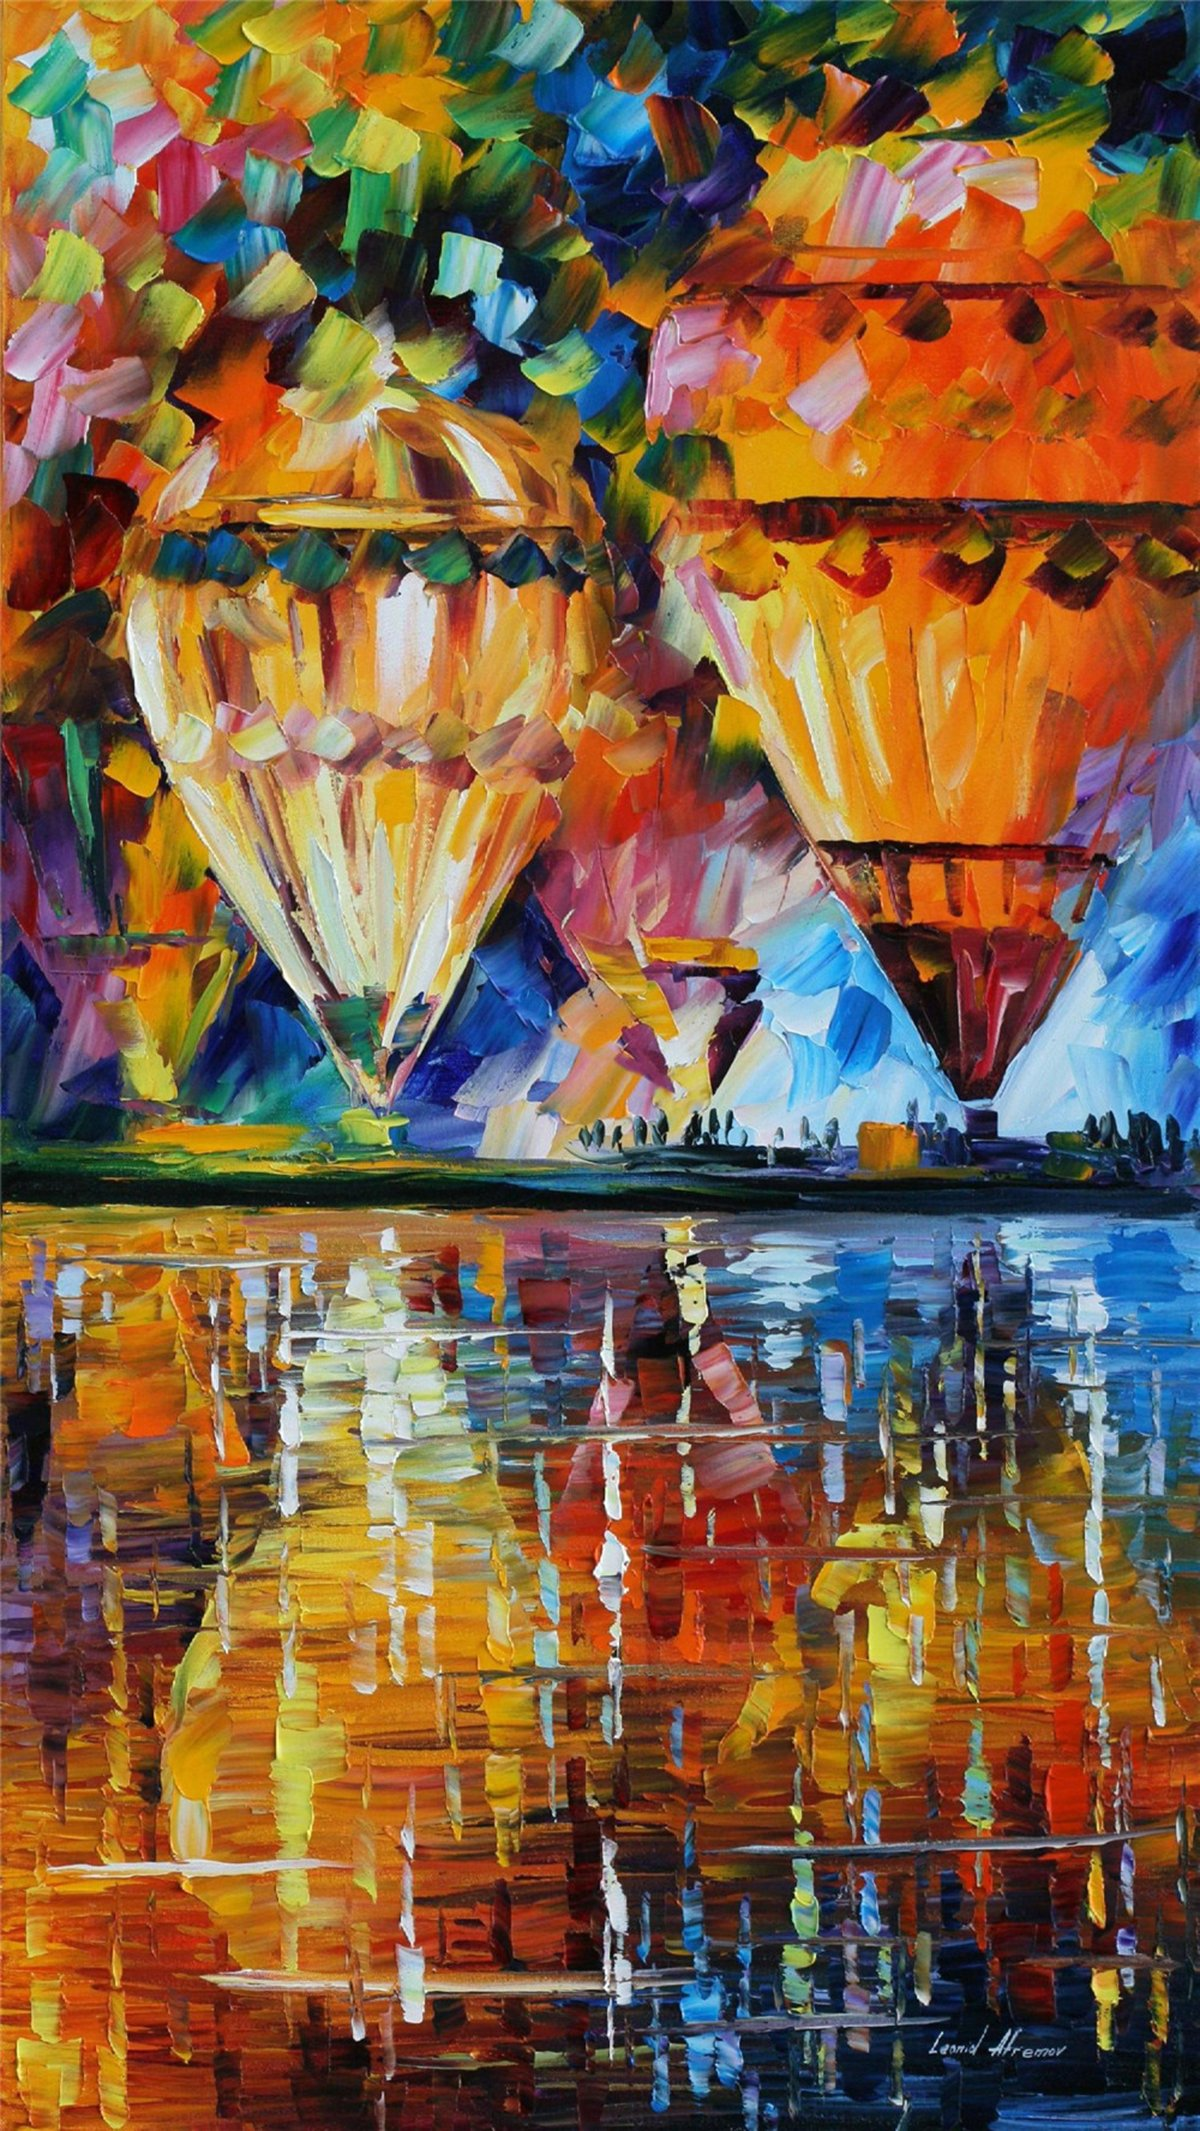 100% Hand Painted Oil Paintings Modern Abstract Oil Painting on Canvas Hot Air Balloon Home Wall Decor (24X44 Inch, Oil Painting 2)